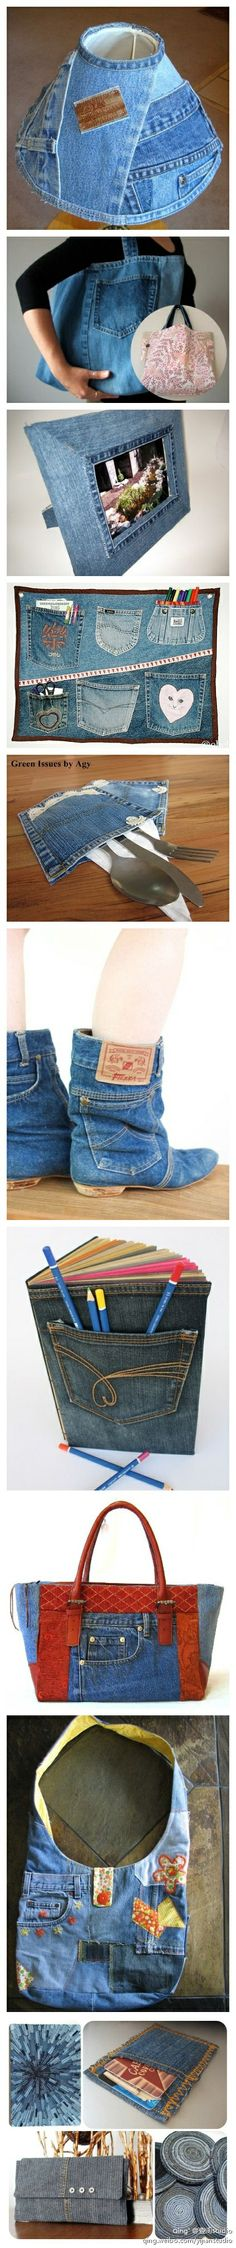 What to do with old jeans - some ideas are a little weird, the lamp one for example, but others are great ways of recycling